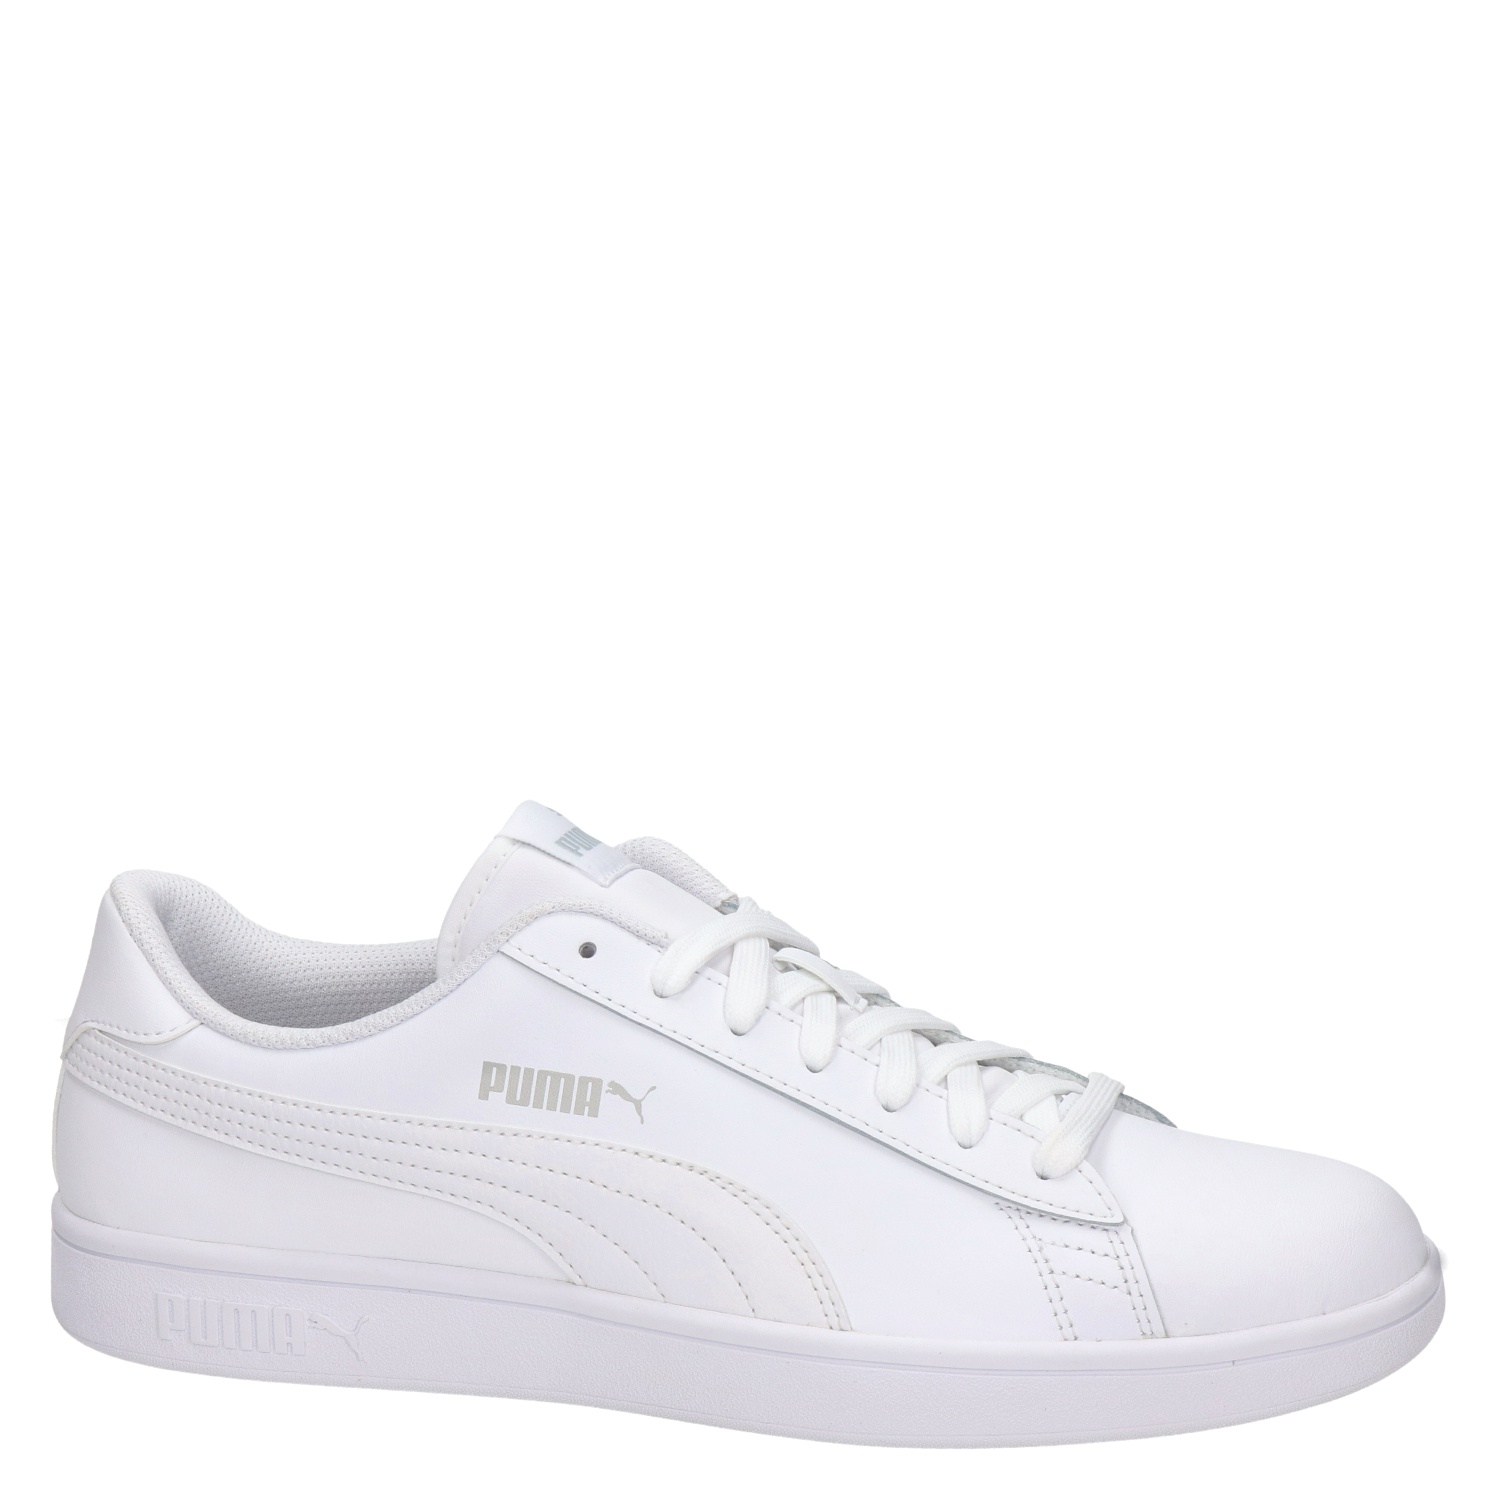 Puma Smash V2 heren lage sneakers wit